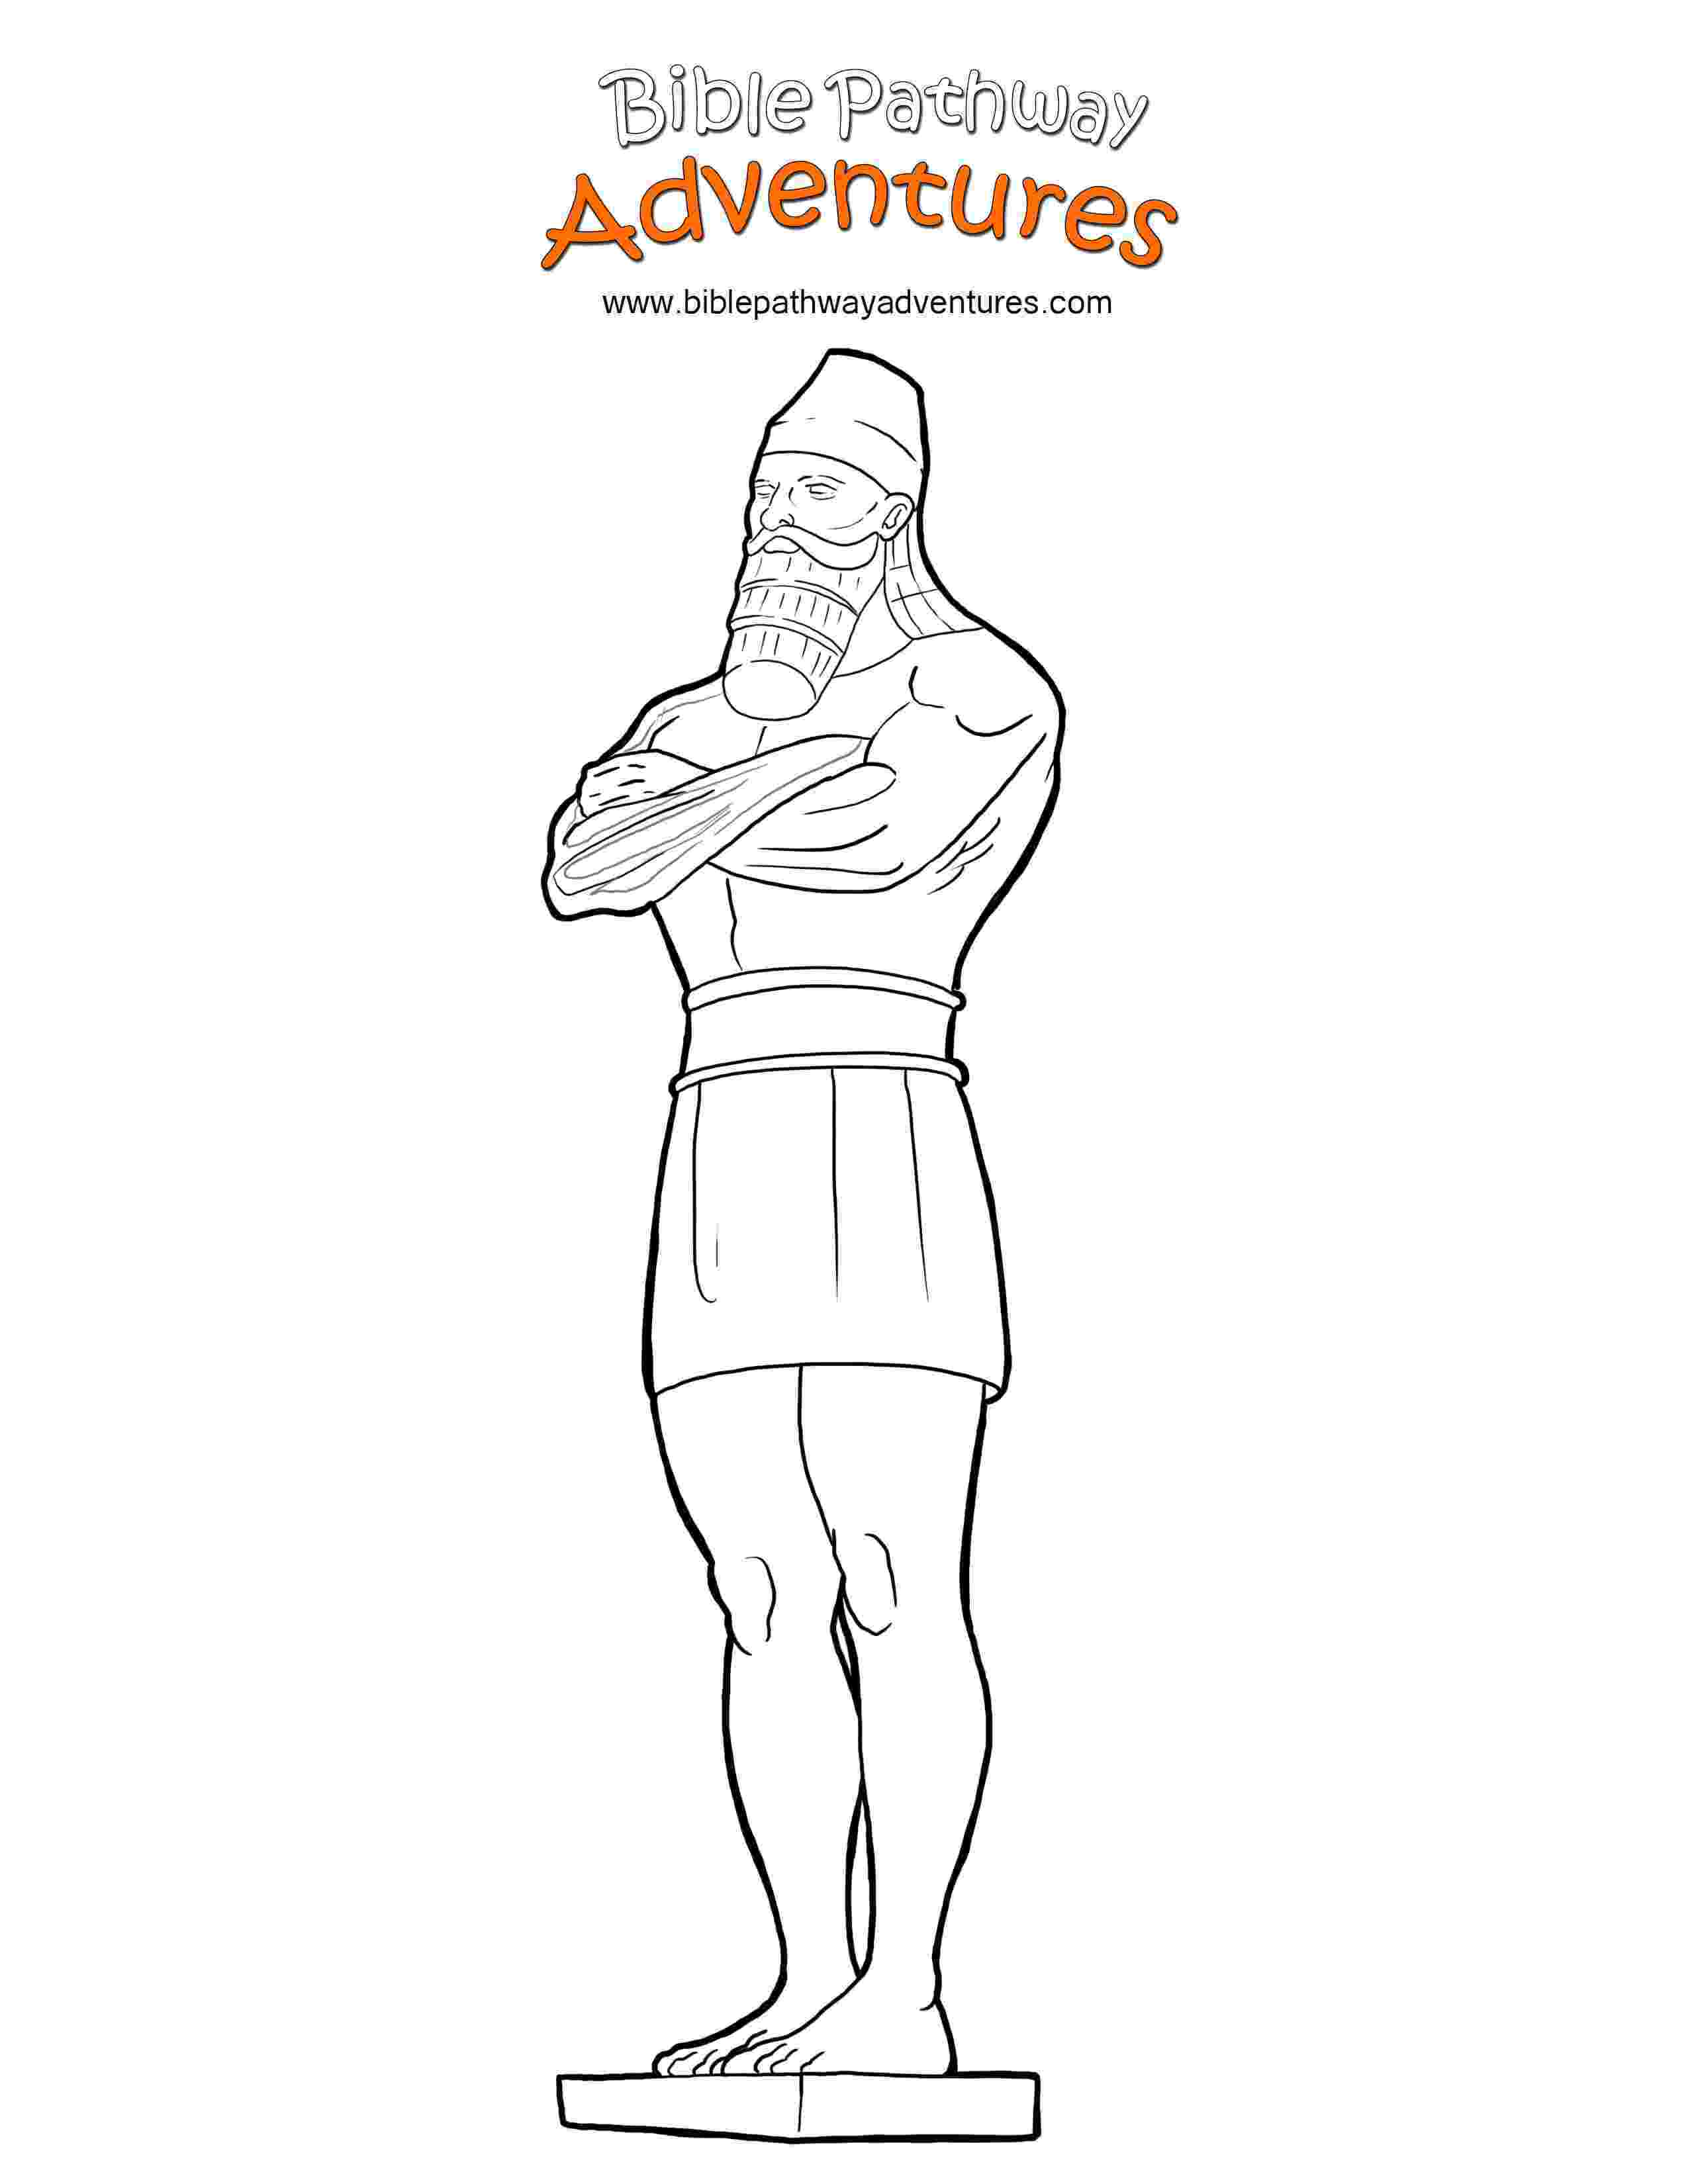 daniel and king nebuchadnezzar coloring pages image result for nebuchadnezzar39s dream coloring page king nebuchadnezzar and daniel pages coloring